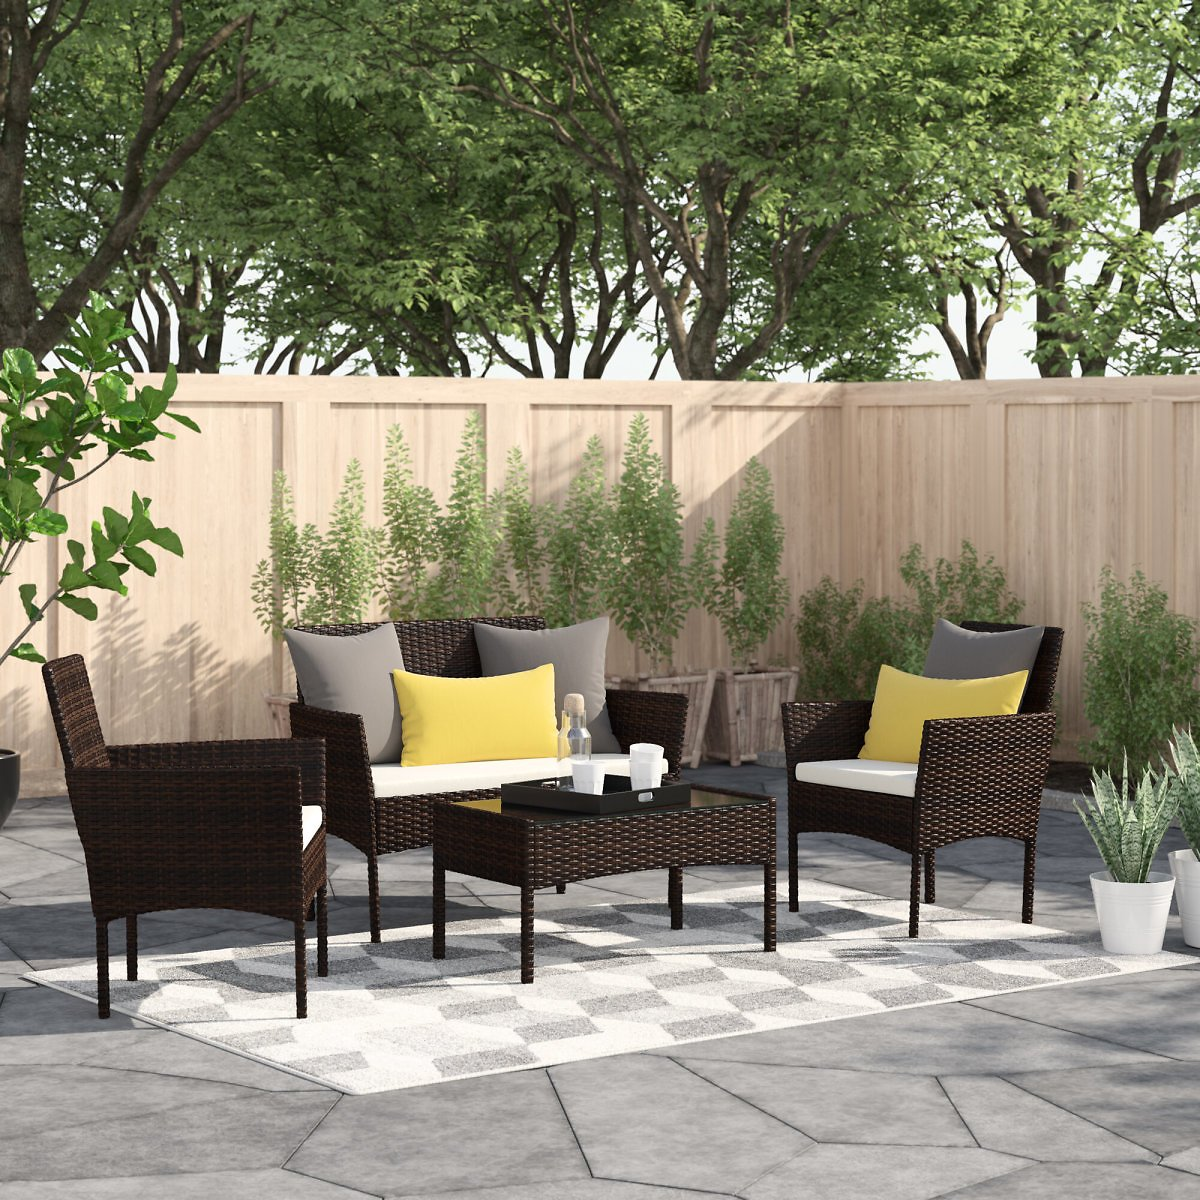 Top-Rated Seating Groups Sale Up to 50% Off - Wayfair